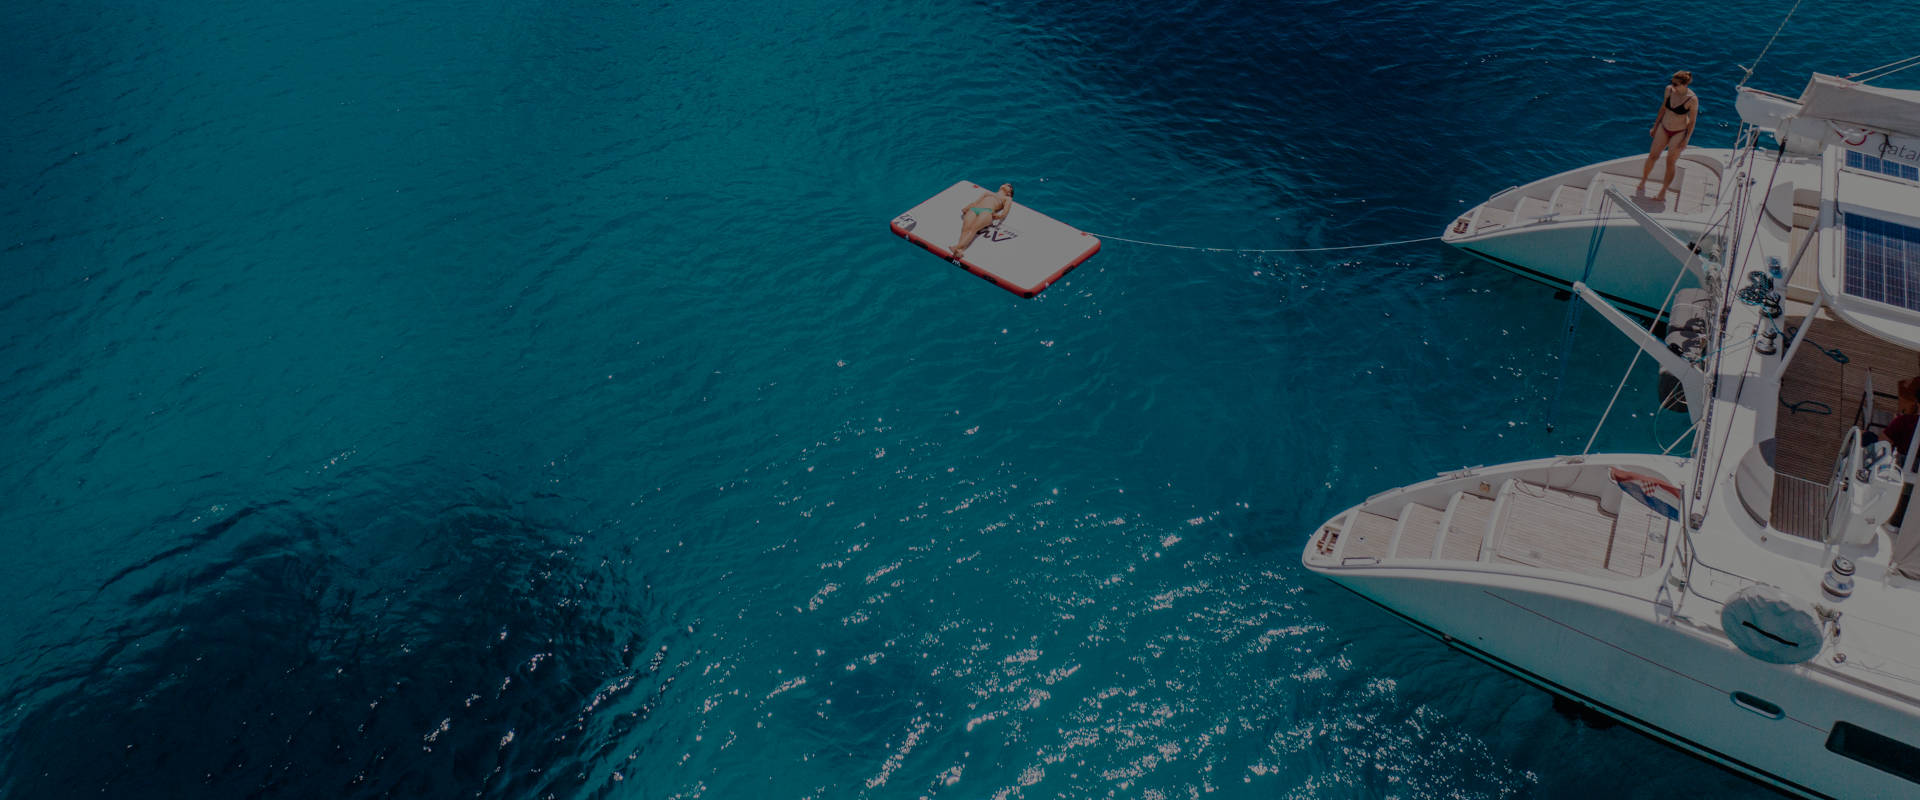 Boutique agency for bareboat and crewed yacht charter